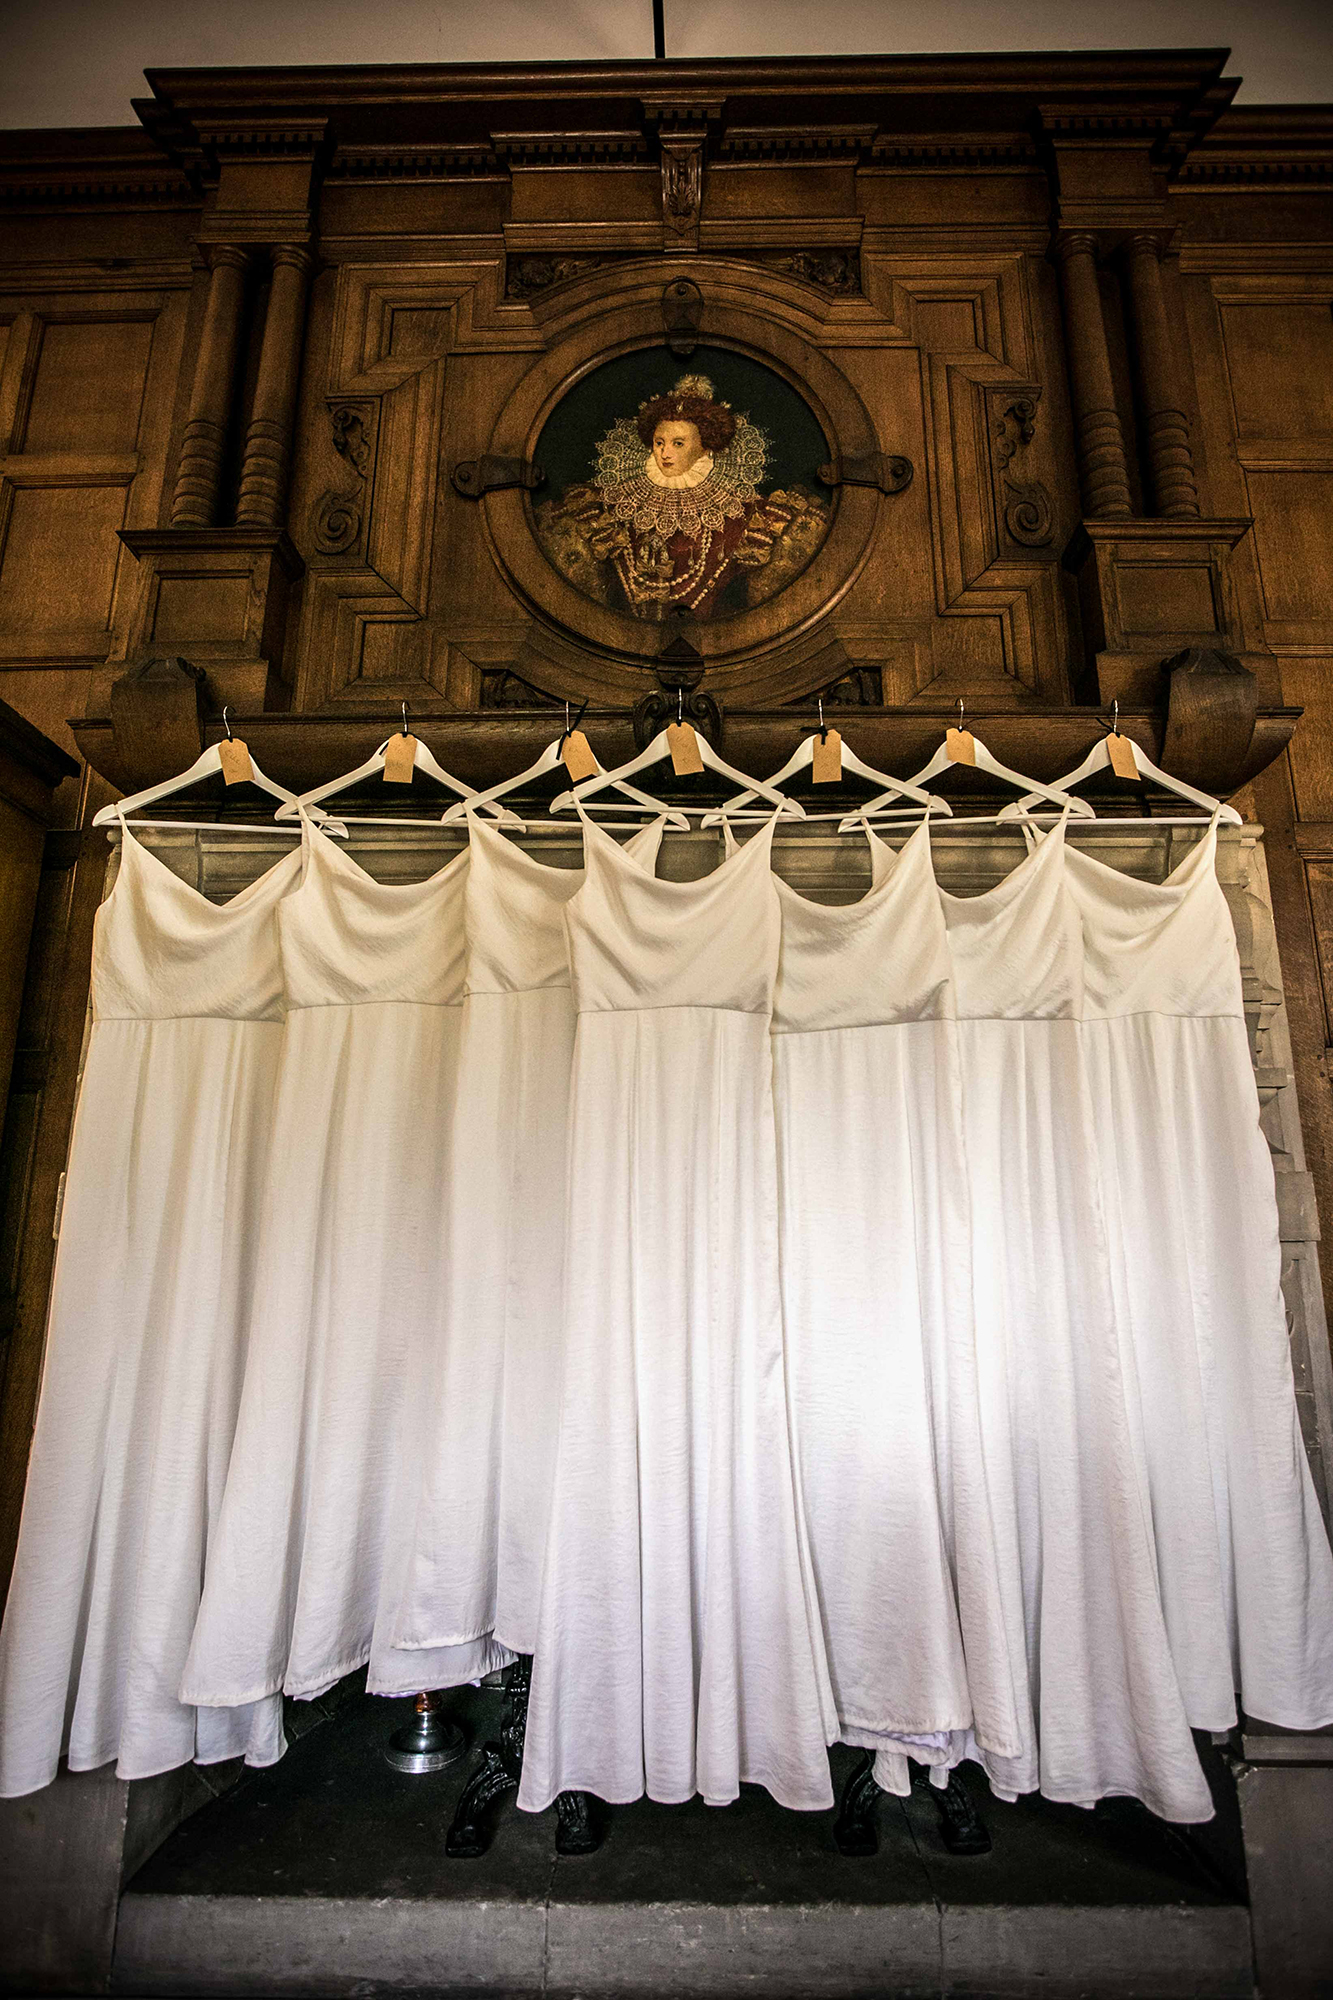 The Bridesmaids dresses hanging up in a stately Tudor room at Hengrave Hall